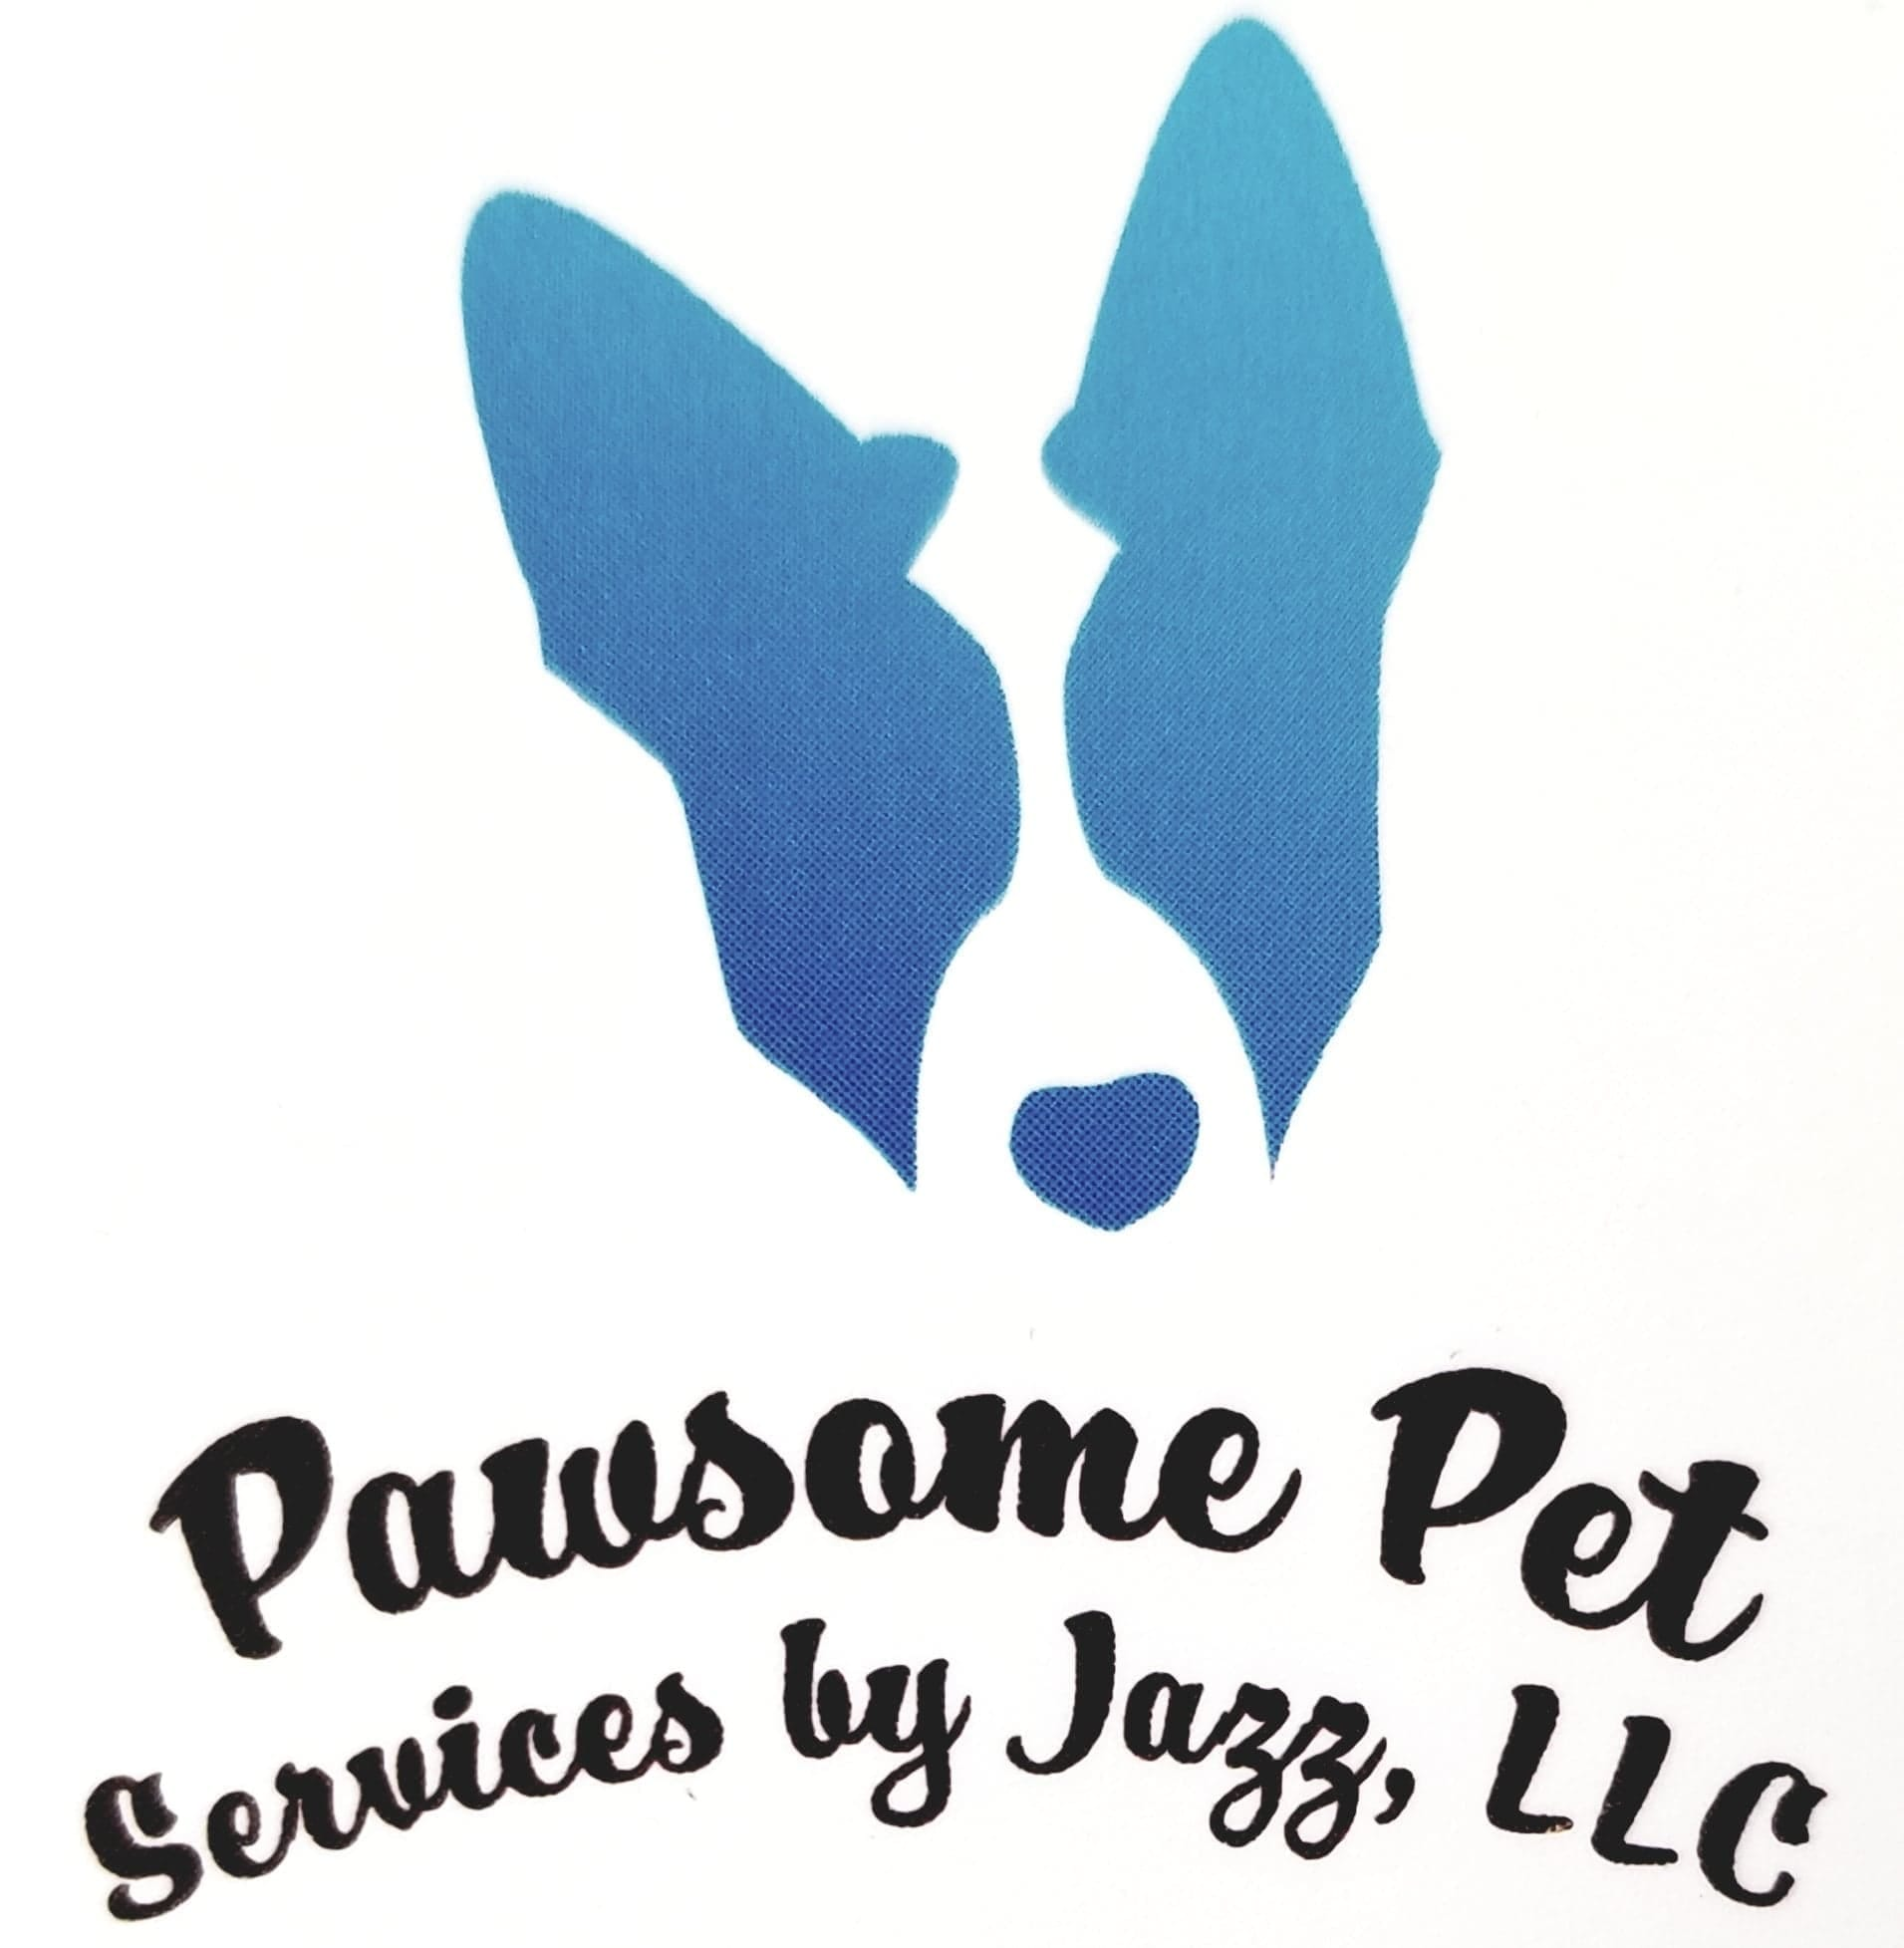 Pawsome Pet Services By Jazz